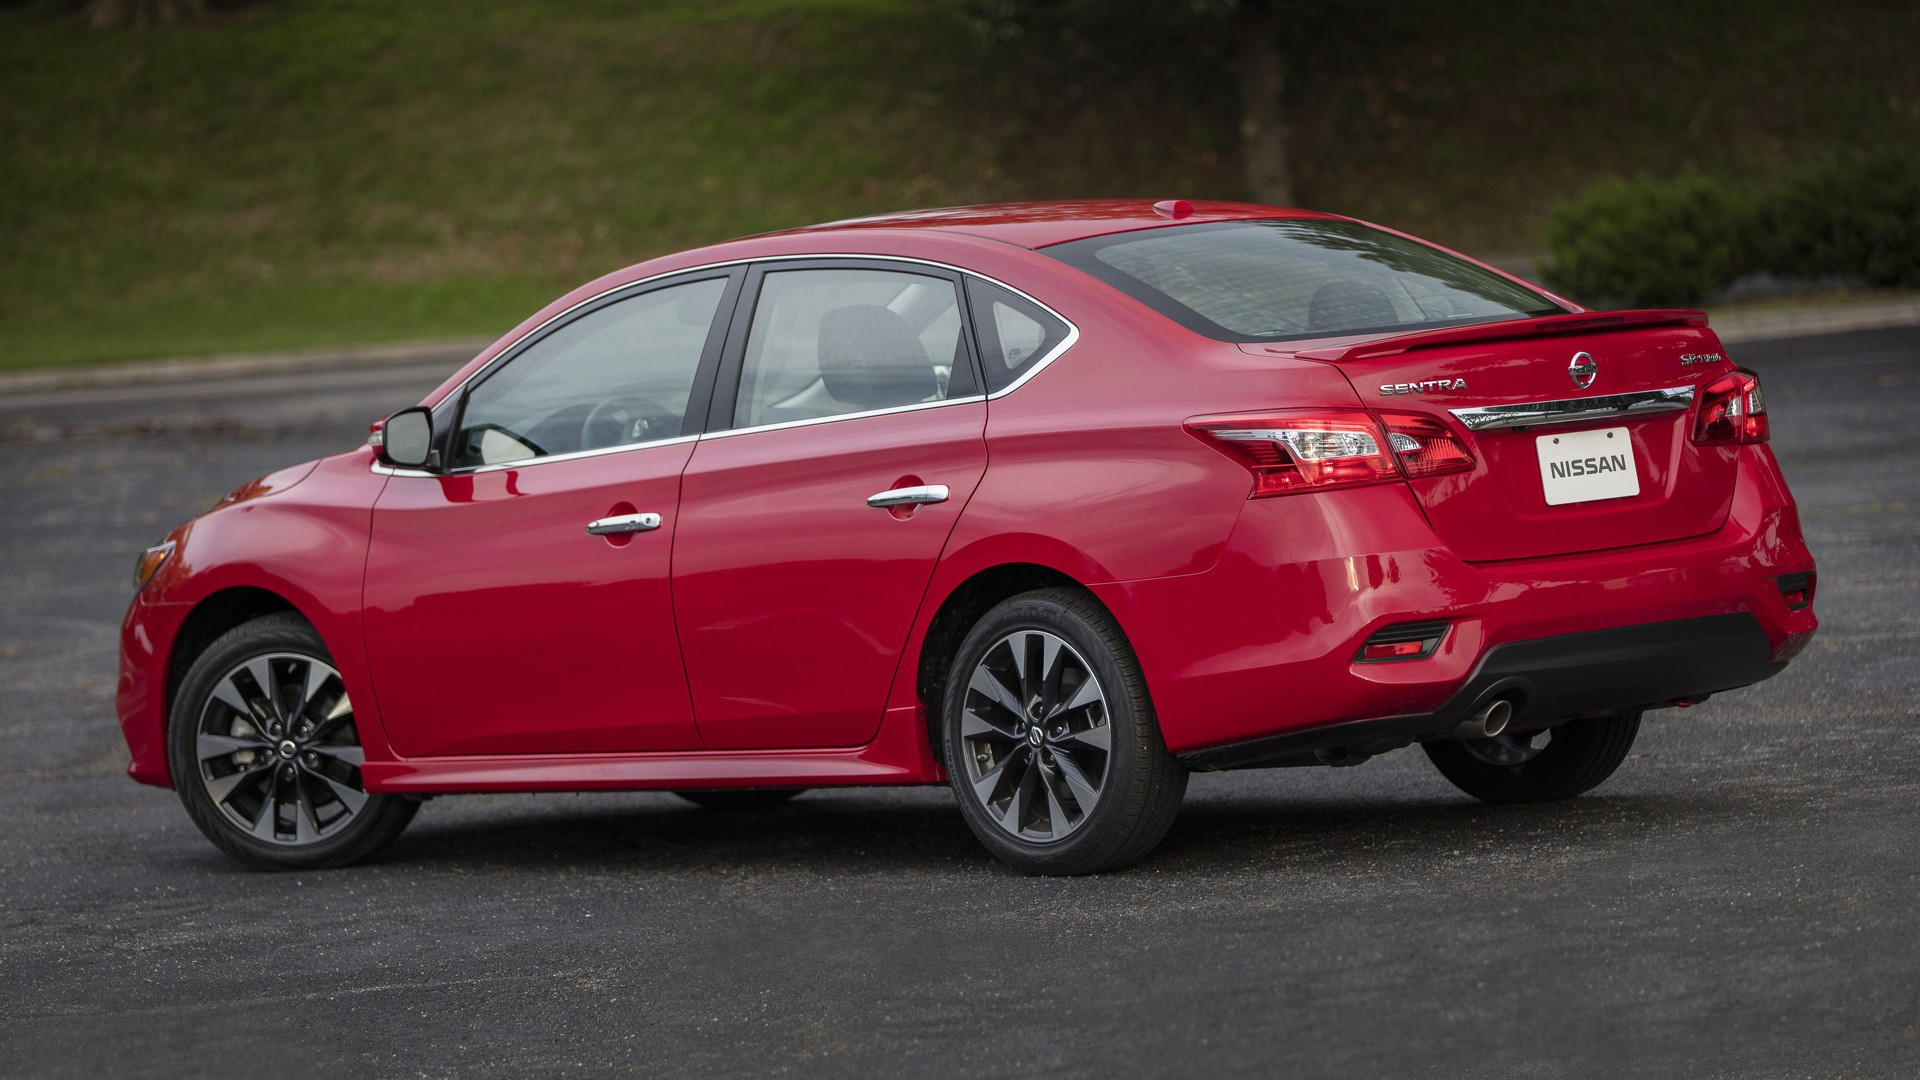 2017 Nissan Sentra Sr Turbo Revealed With 188 Hp And